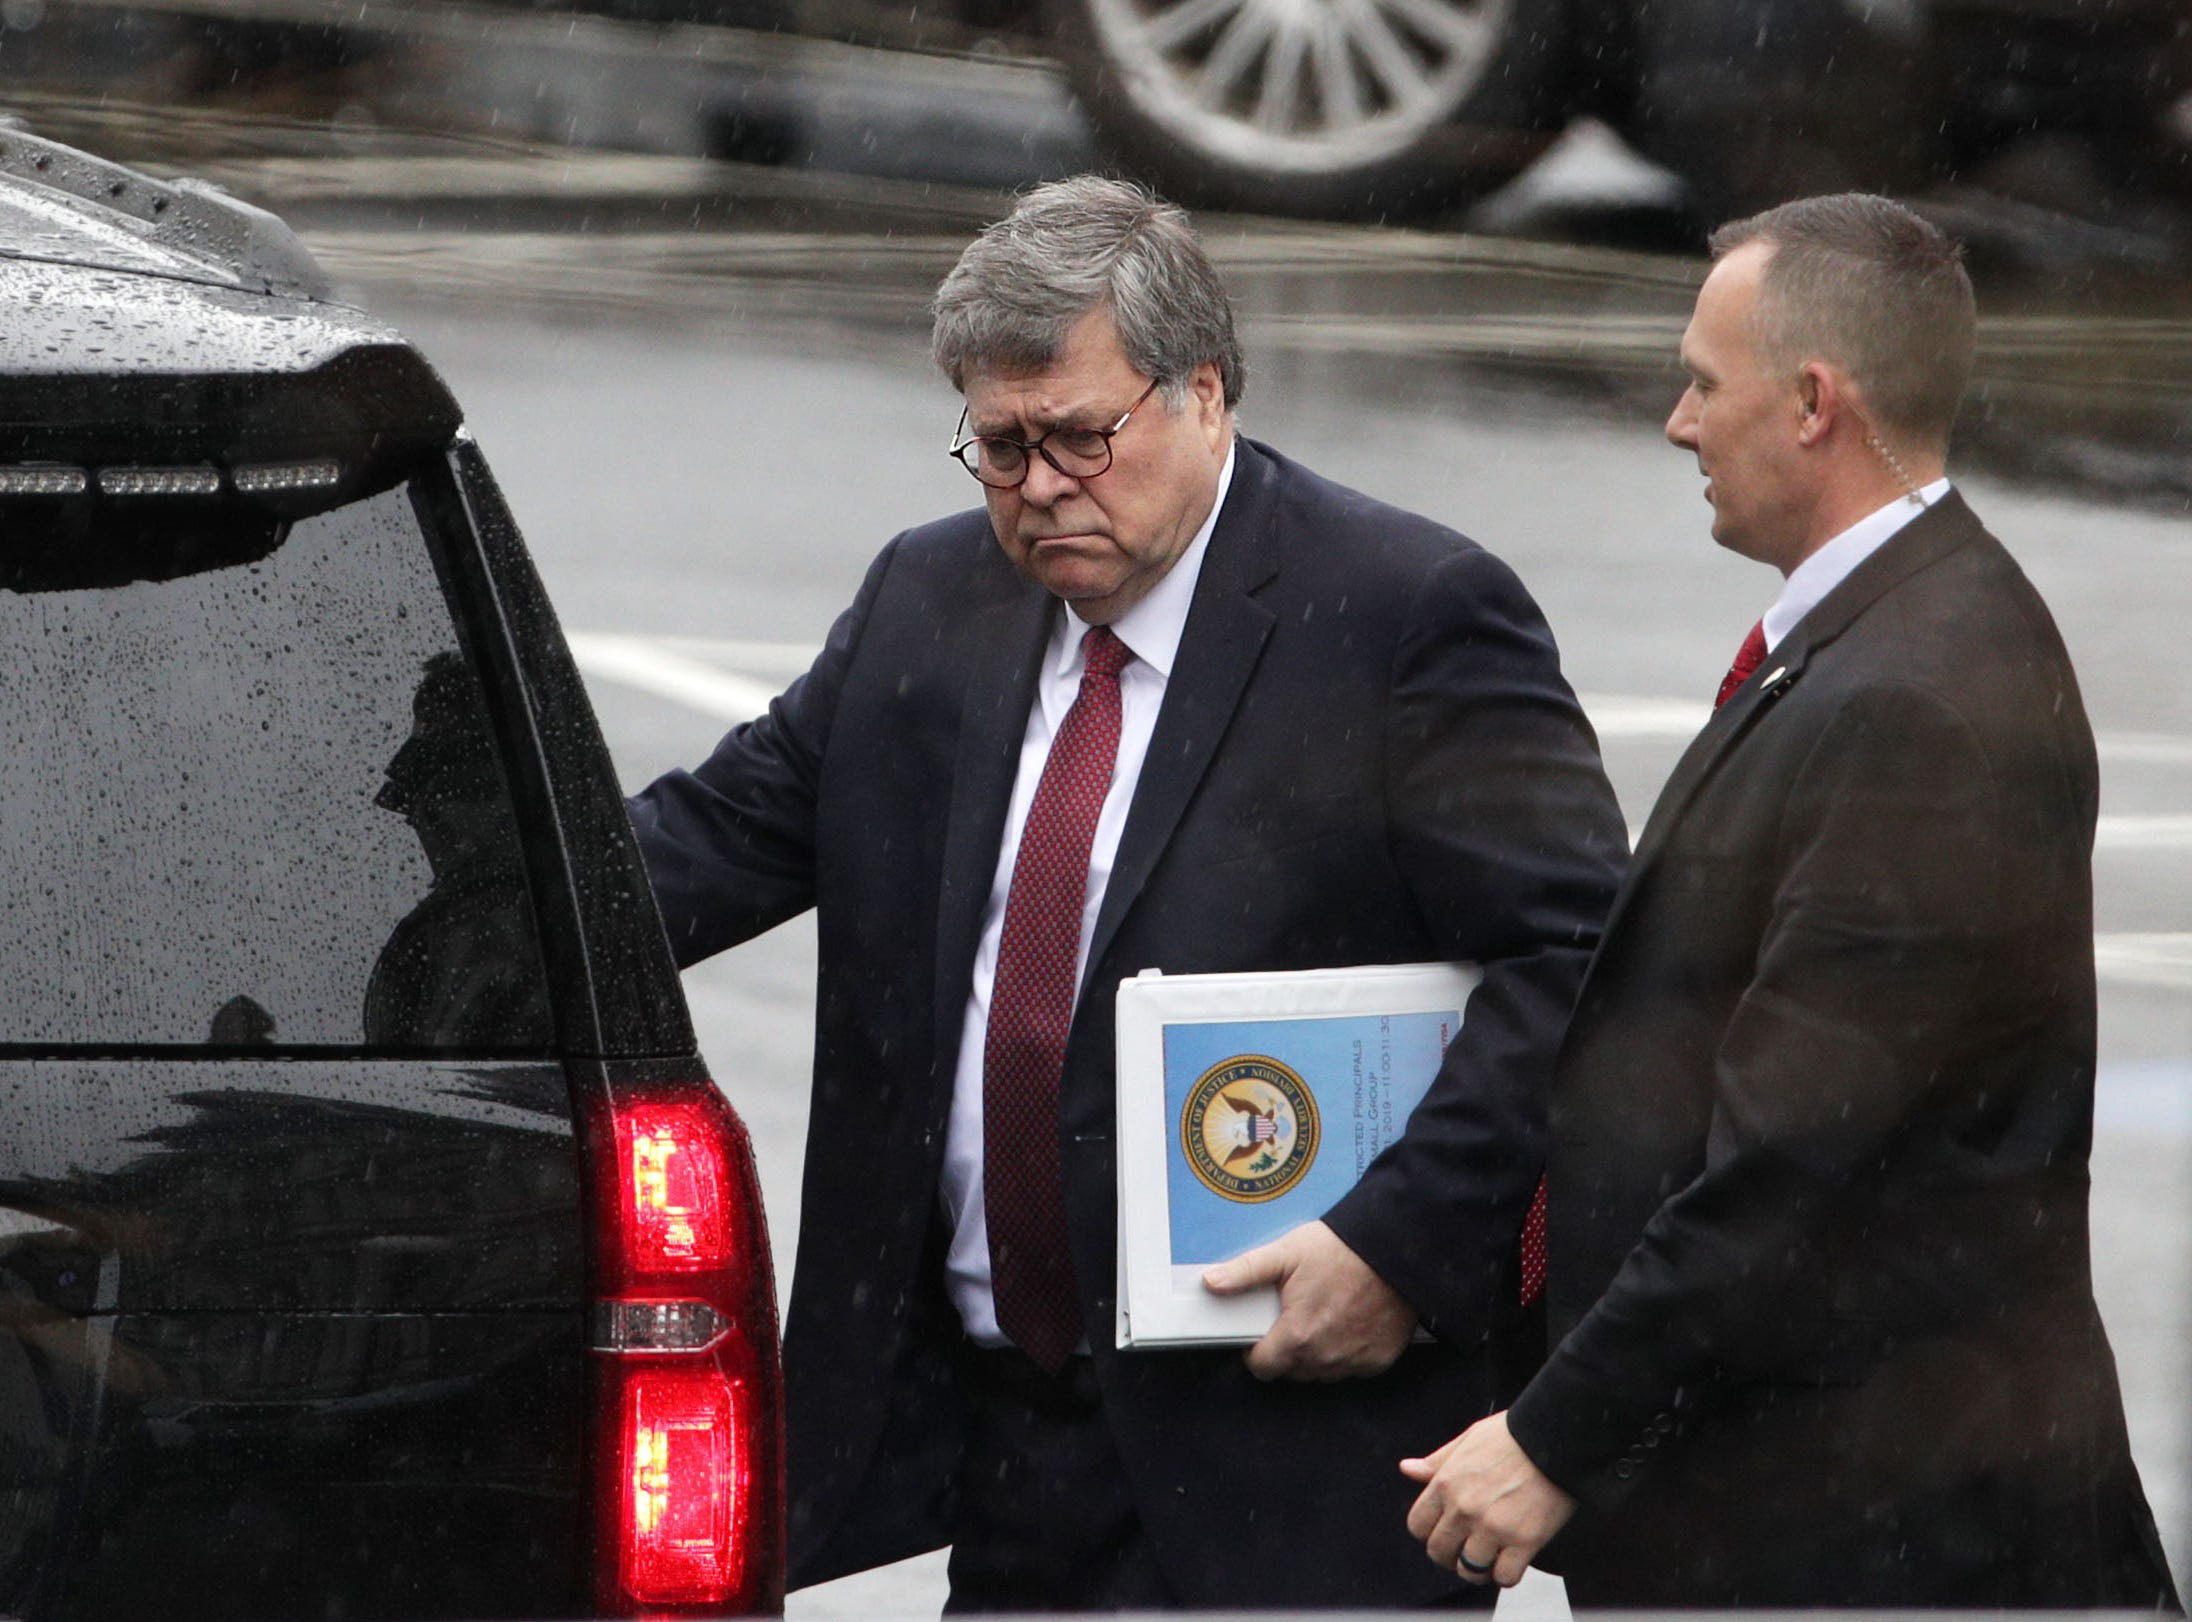 Attorney General William Barr, left, leaves after a meeting at the West Wing of the White House March 21, 2019 in Washington, DC. Key law-enforcement officials in Washington are preparing for the release of the report by special counsel Robert Mueller.